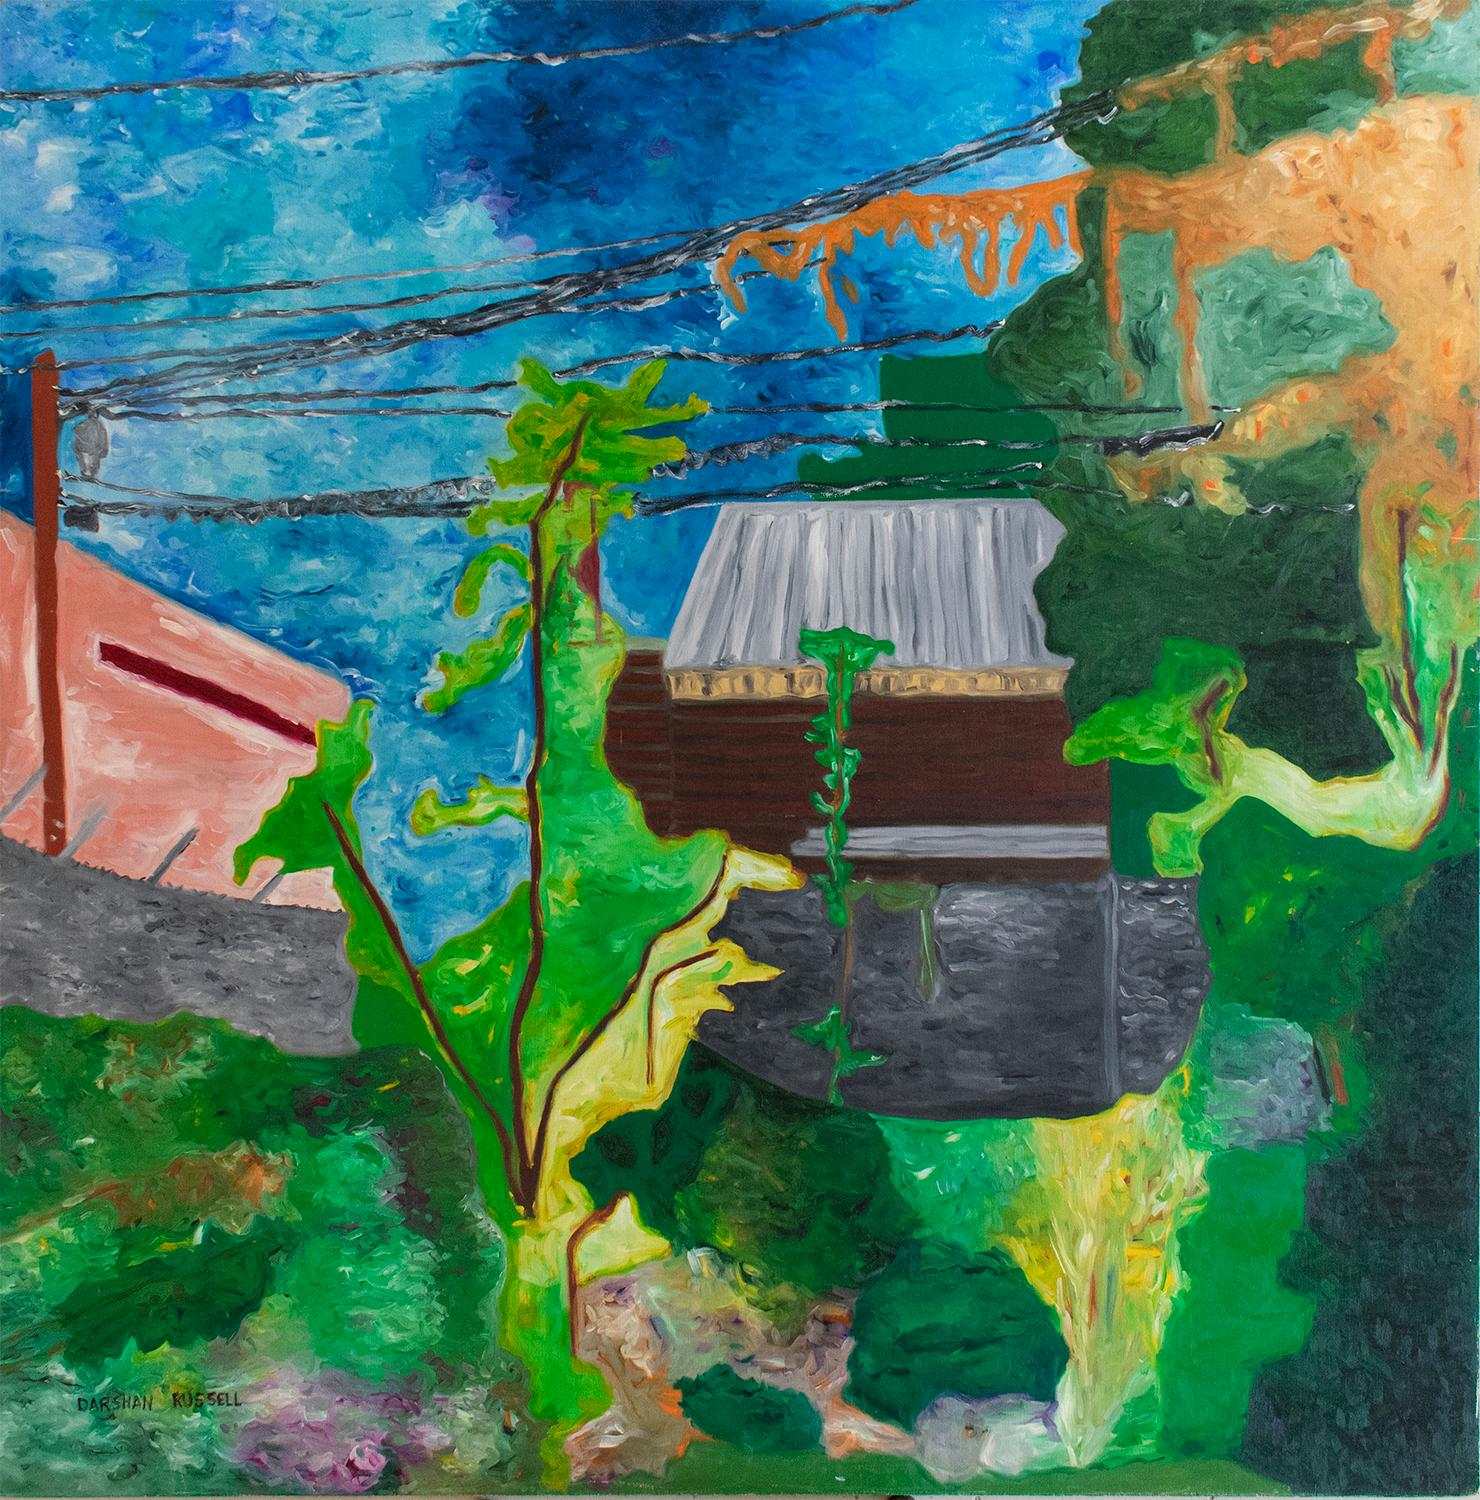 Backyard No. 4 (Large Square Abstracted Landscape Painting on Board)